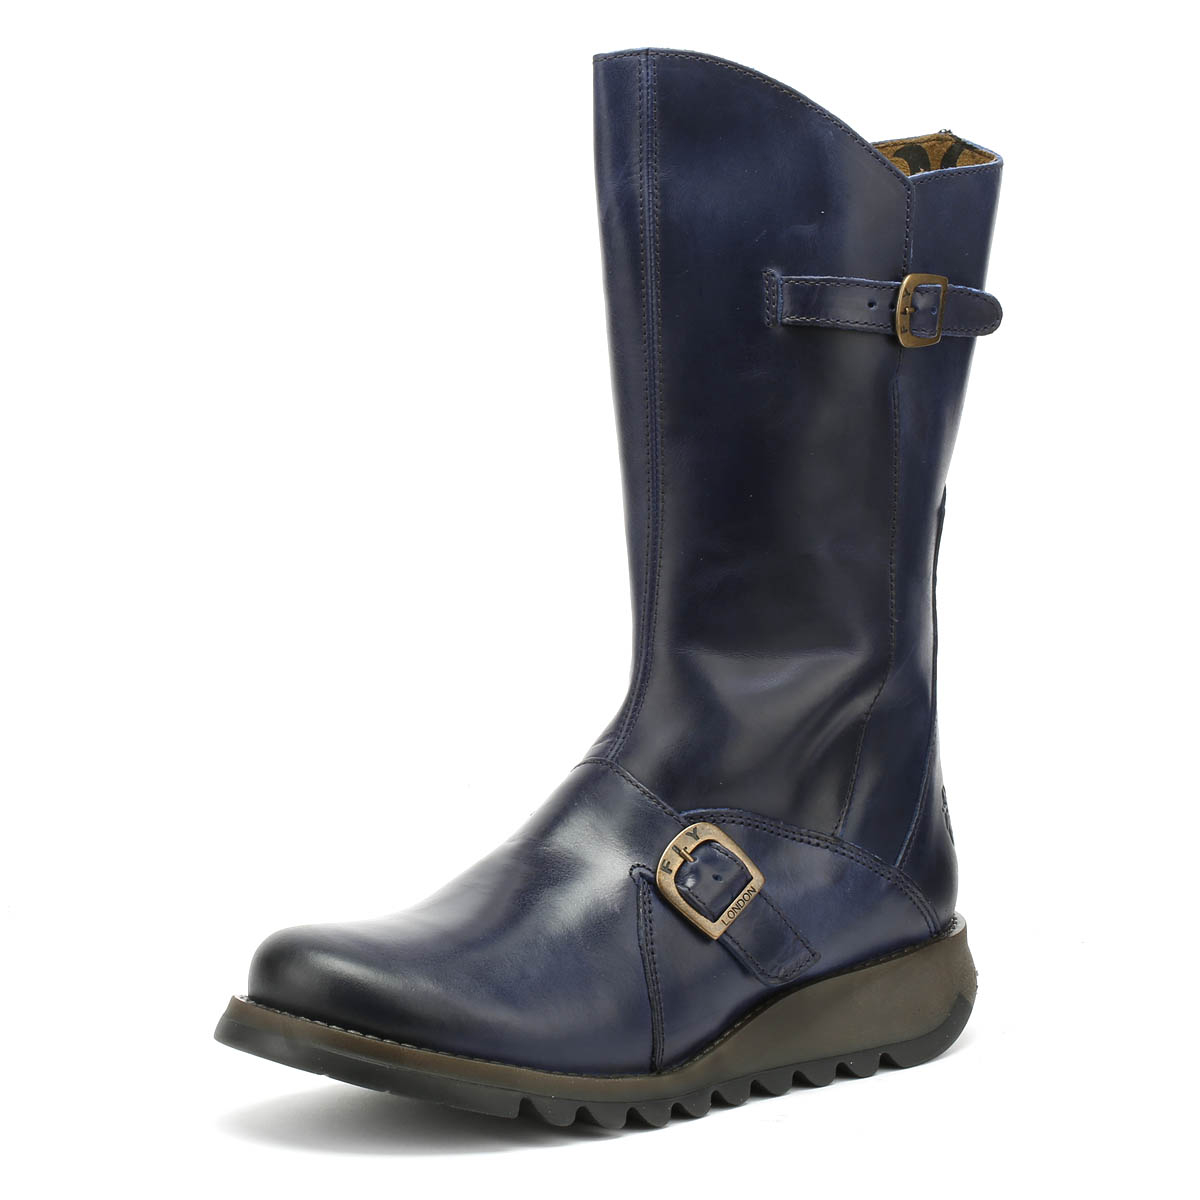 2dfcd731 Details about Fly London Womens Boots Blue Mes 2 Rug Mid Calf Buckle Winter  Ladies Shoes